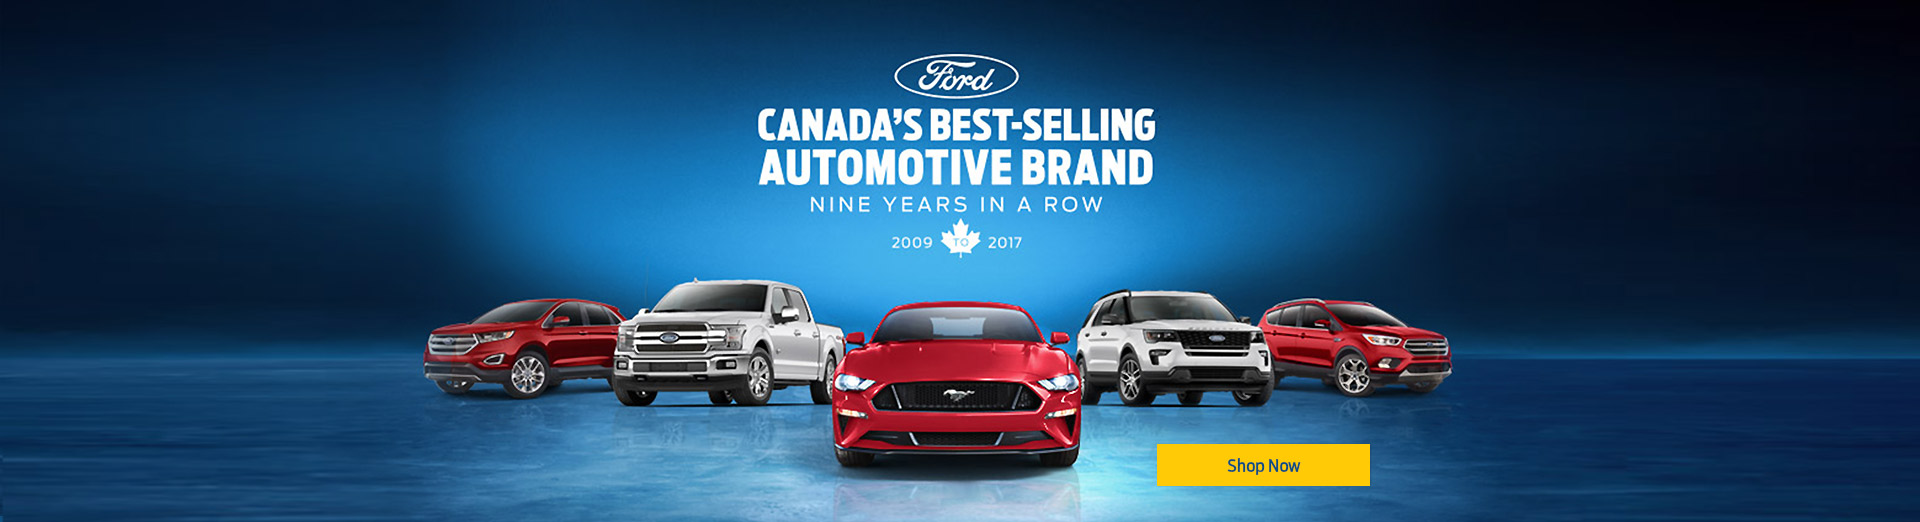 Canada's Best Automotive Brand for Three Years in a Row